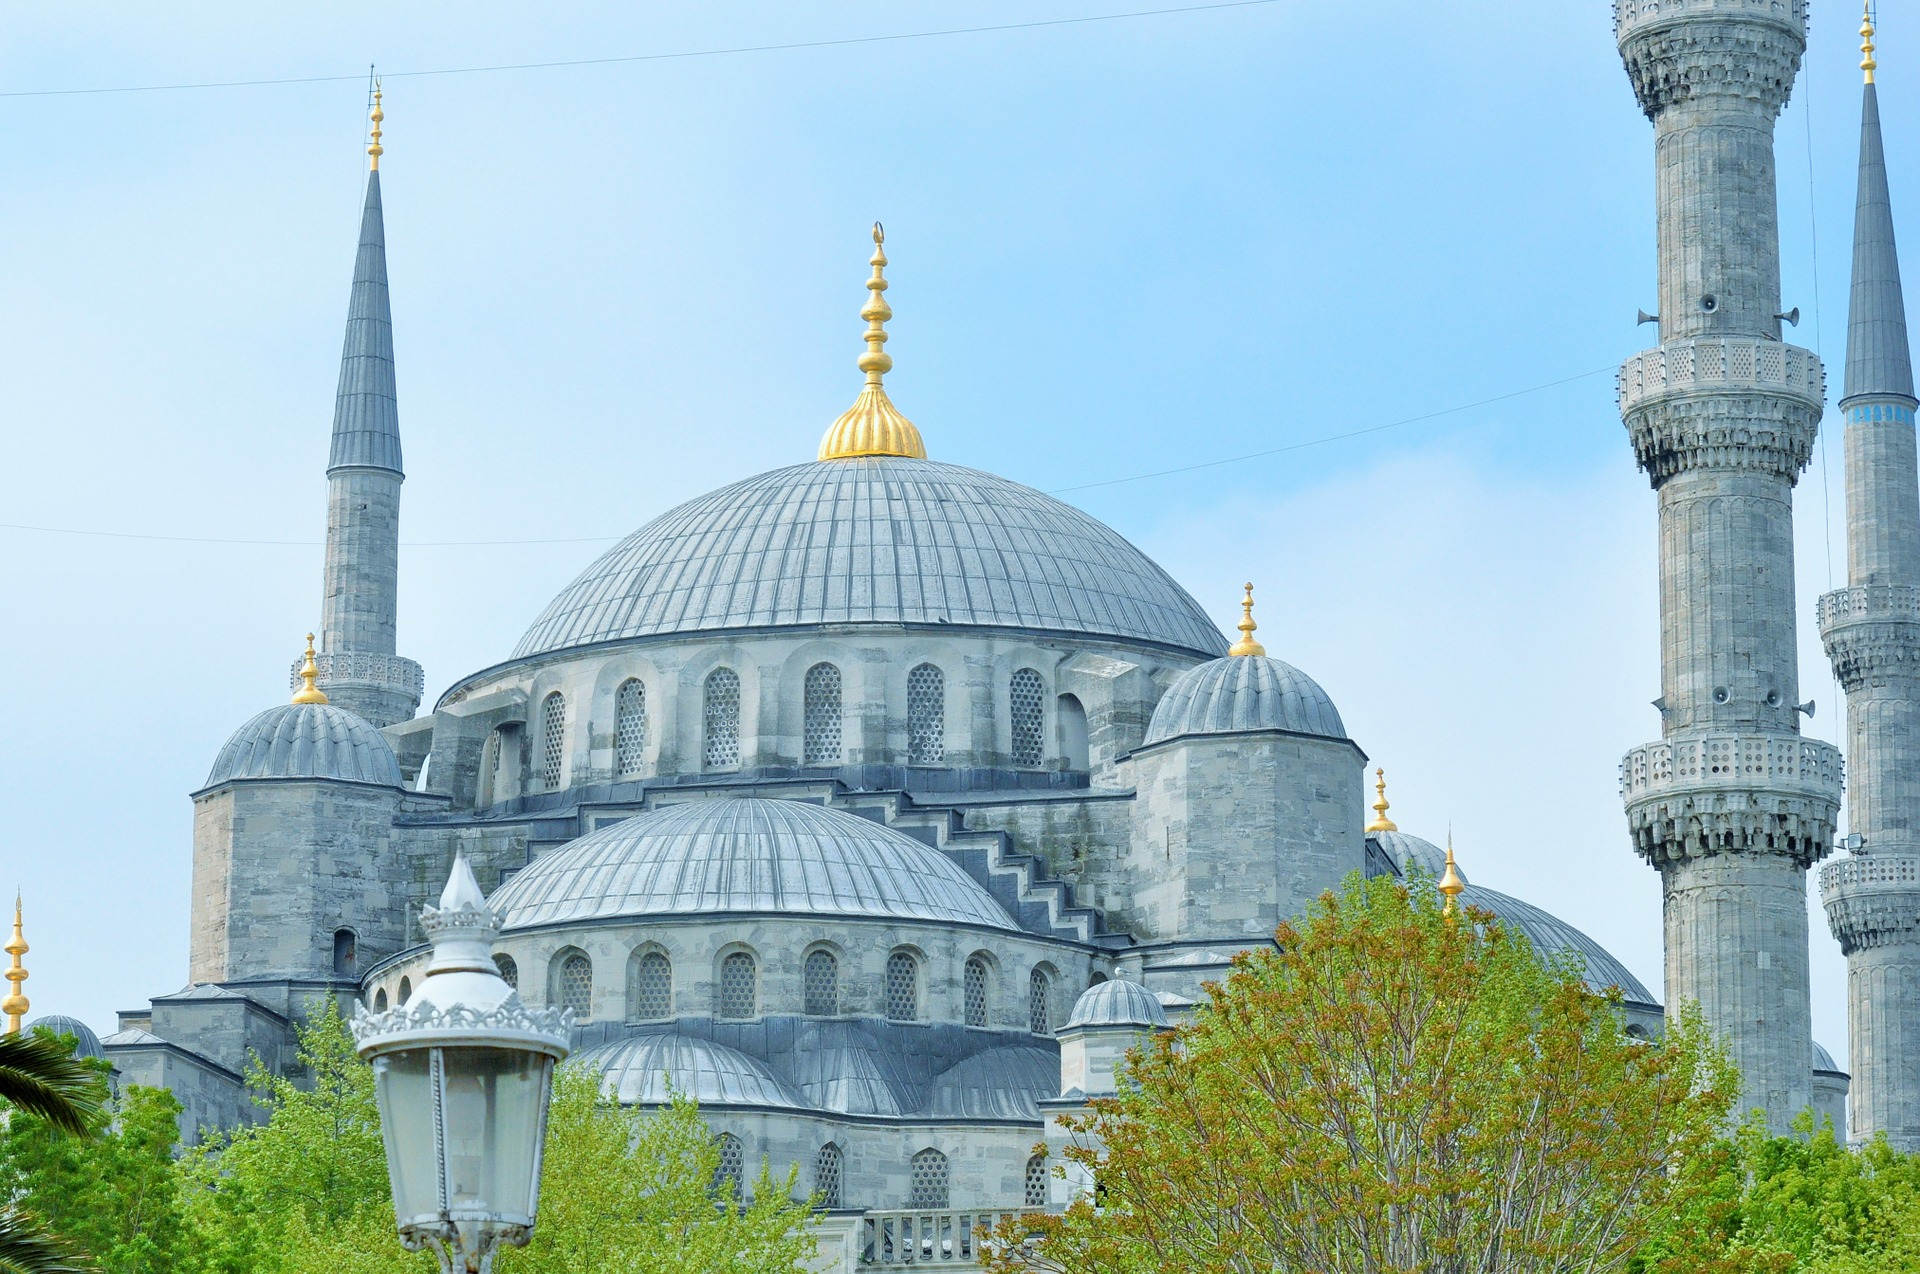 How_to_go_to_sultanahmet_from_ataturk_airport